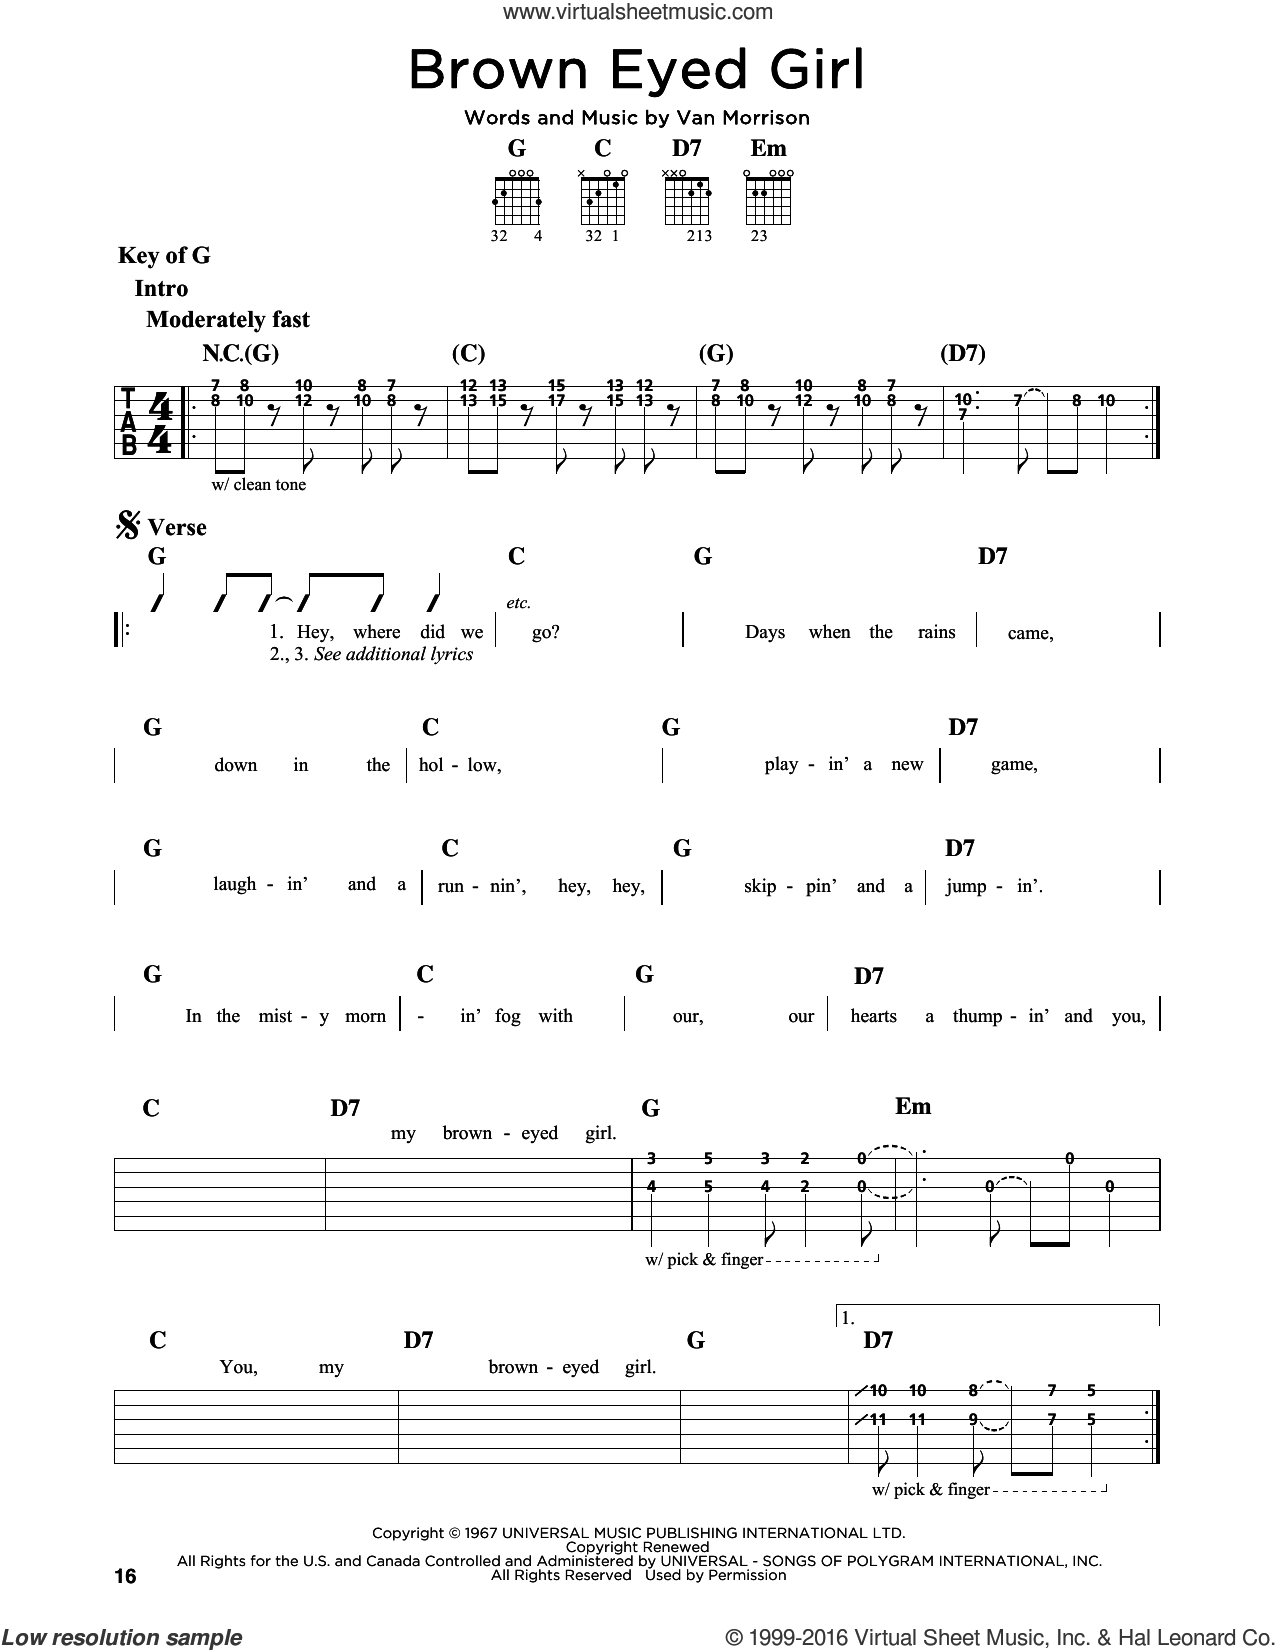 Brown Eyed Girl sheet music for guitar solo (lead sheet) by Van Morrison. Score Image Preview.